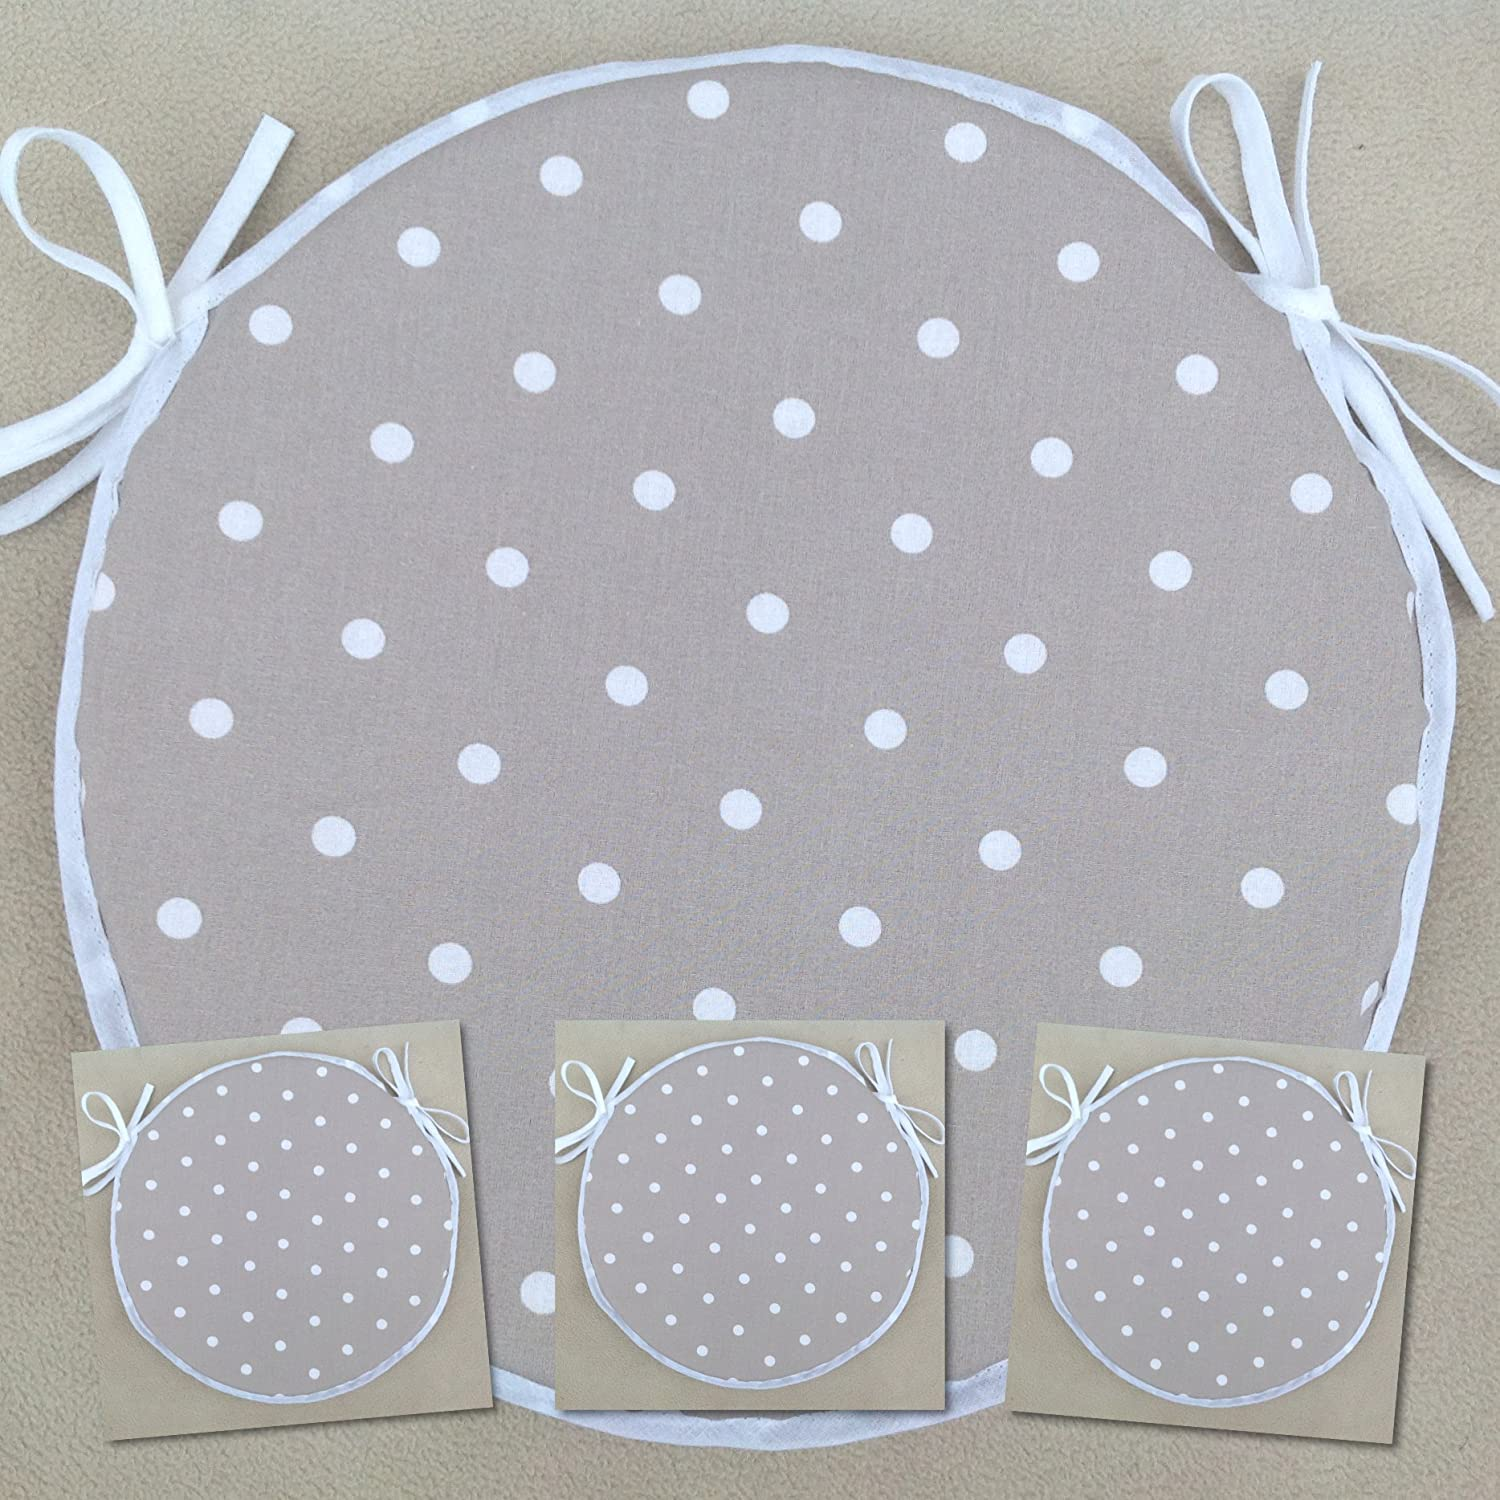 SET OF 4 TAUPE POLKA DOT PATTERN ROUND CHAIR SEAT PADS For Round Bistro Style Seats Approx.14 Across